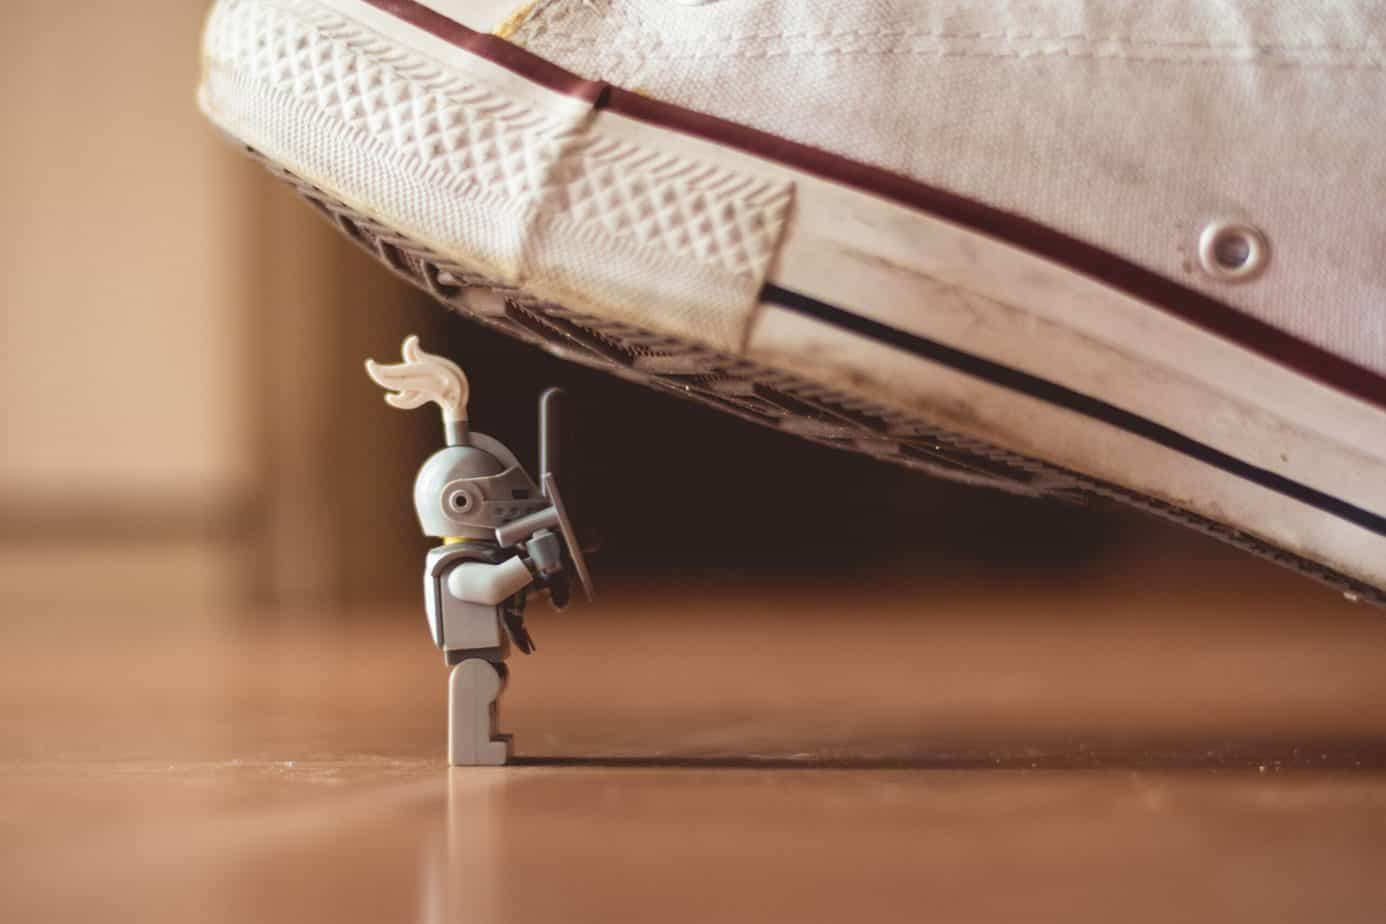 Toy soldier under the heel of a sneaker